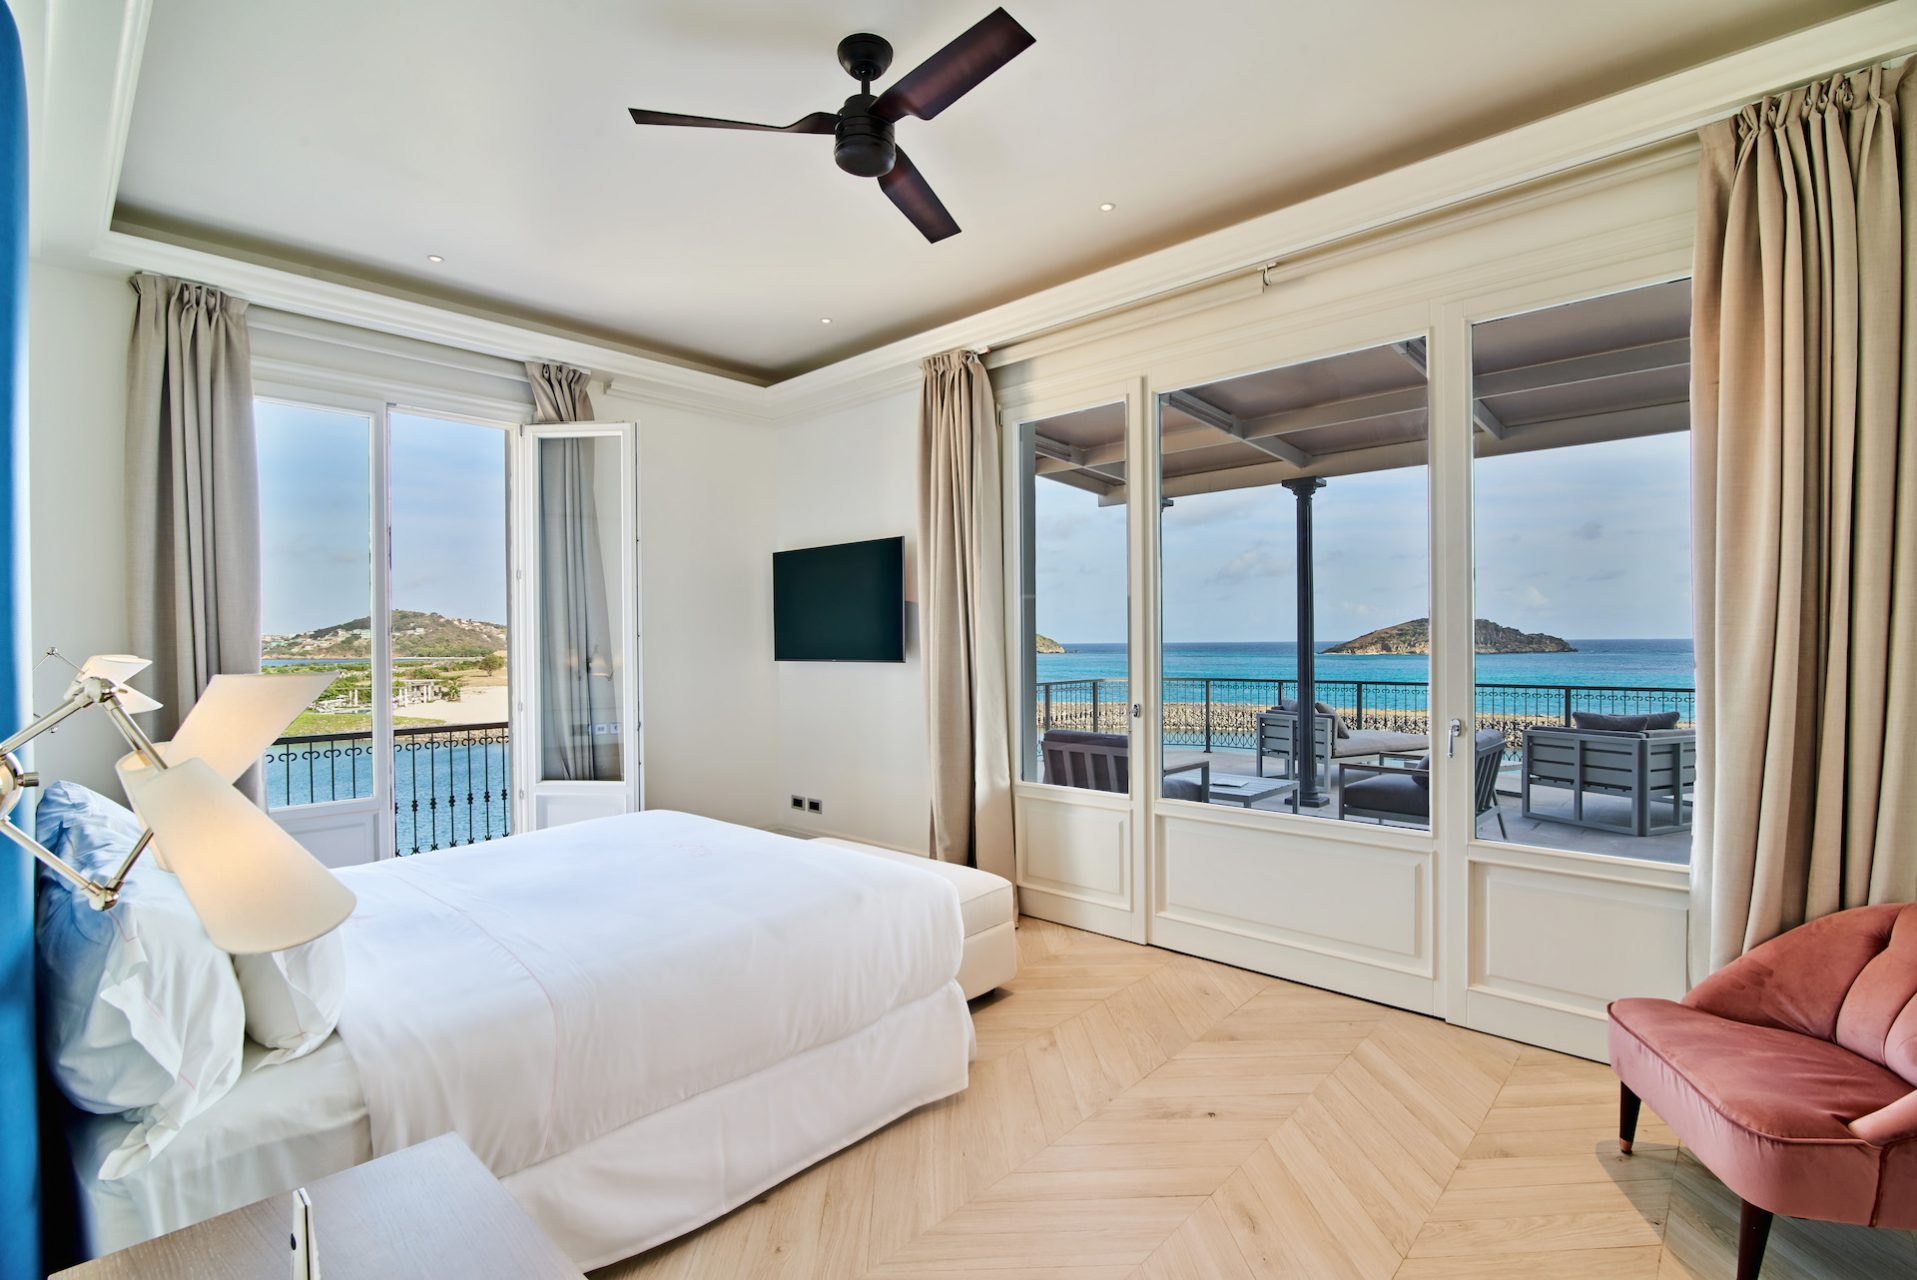 sandy lane yacht club bedroom with sea view